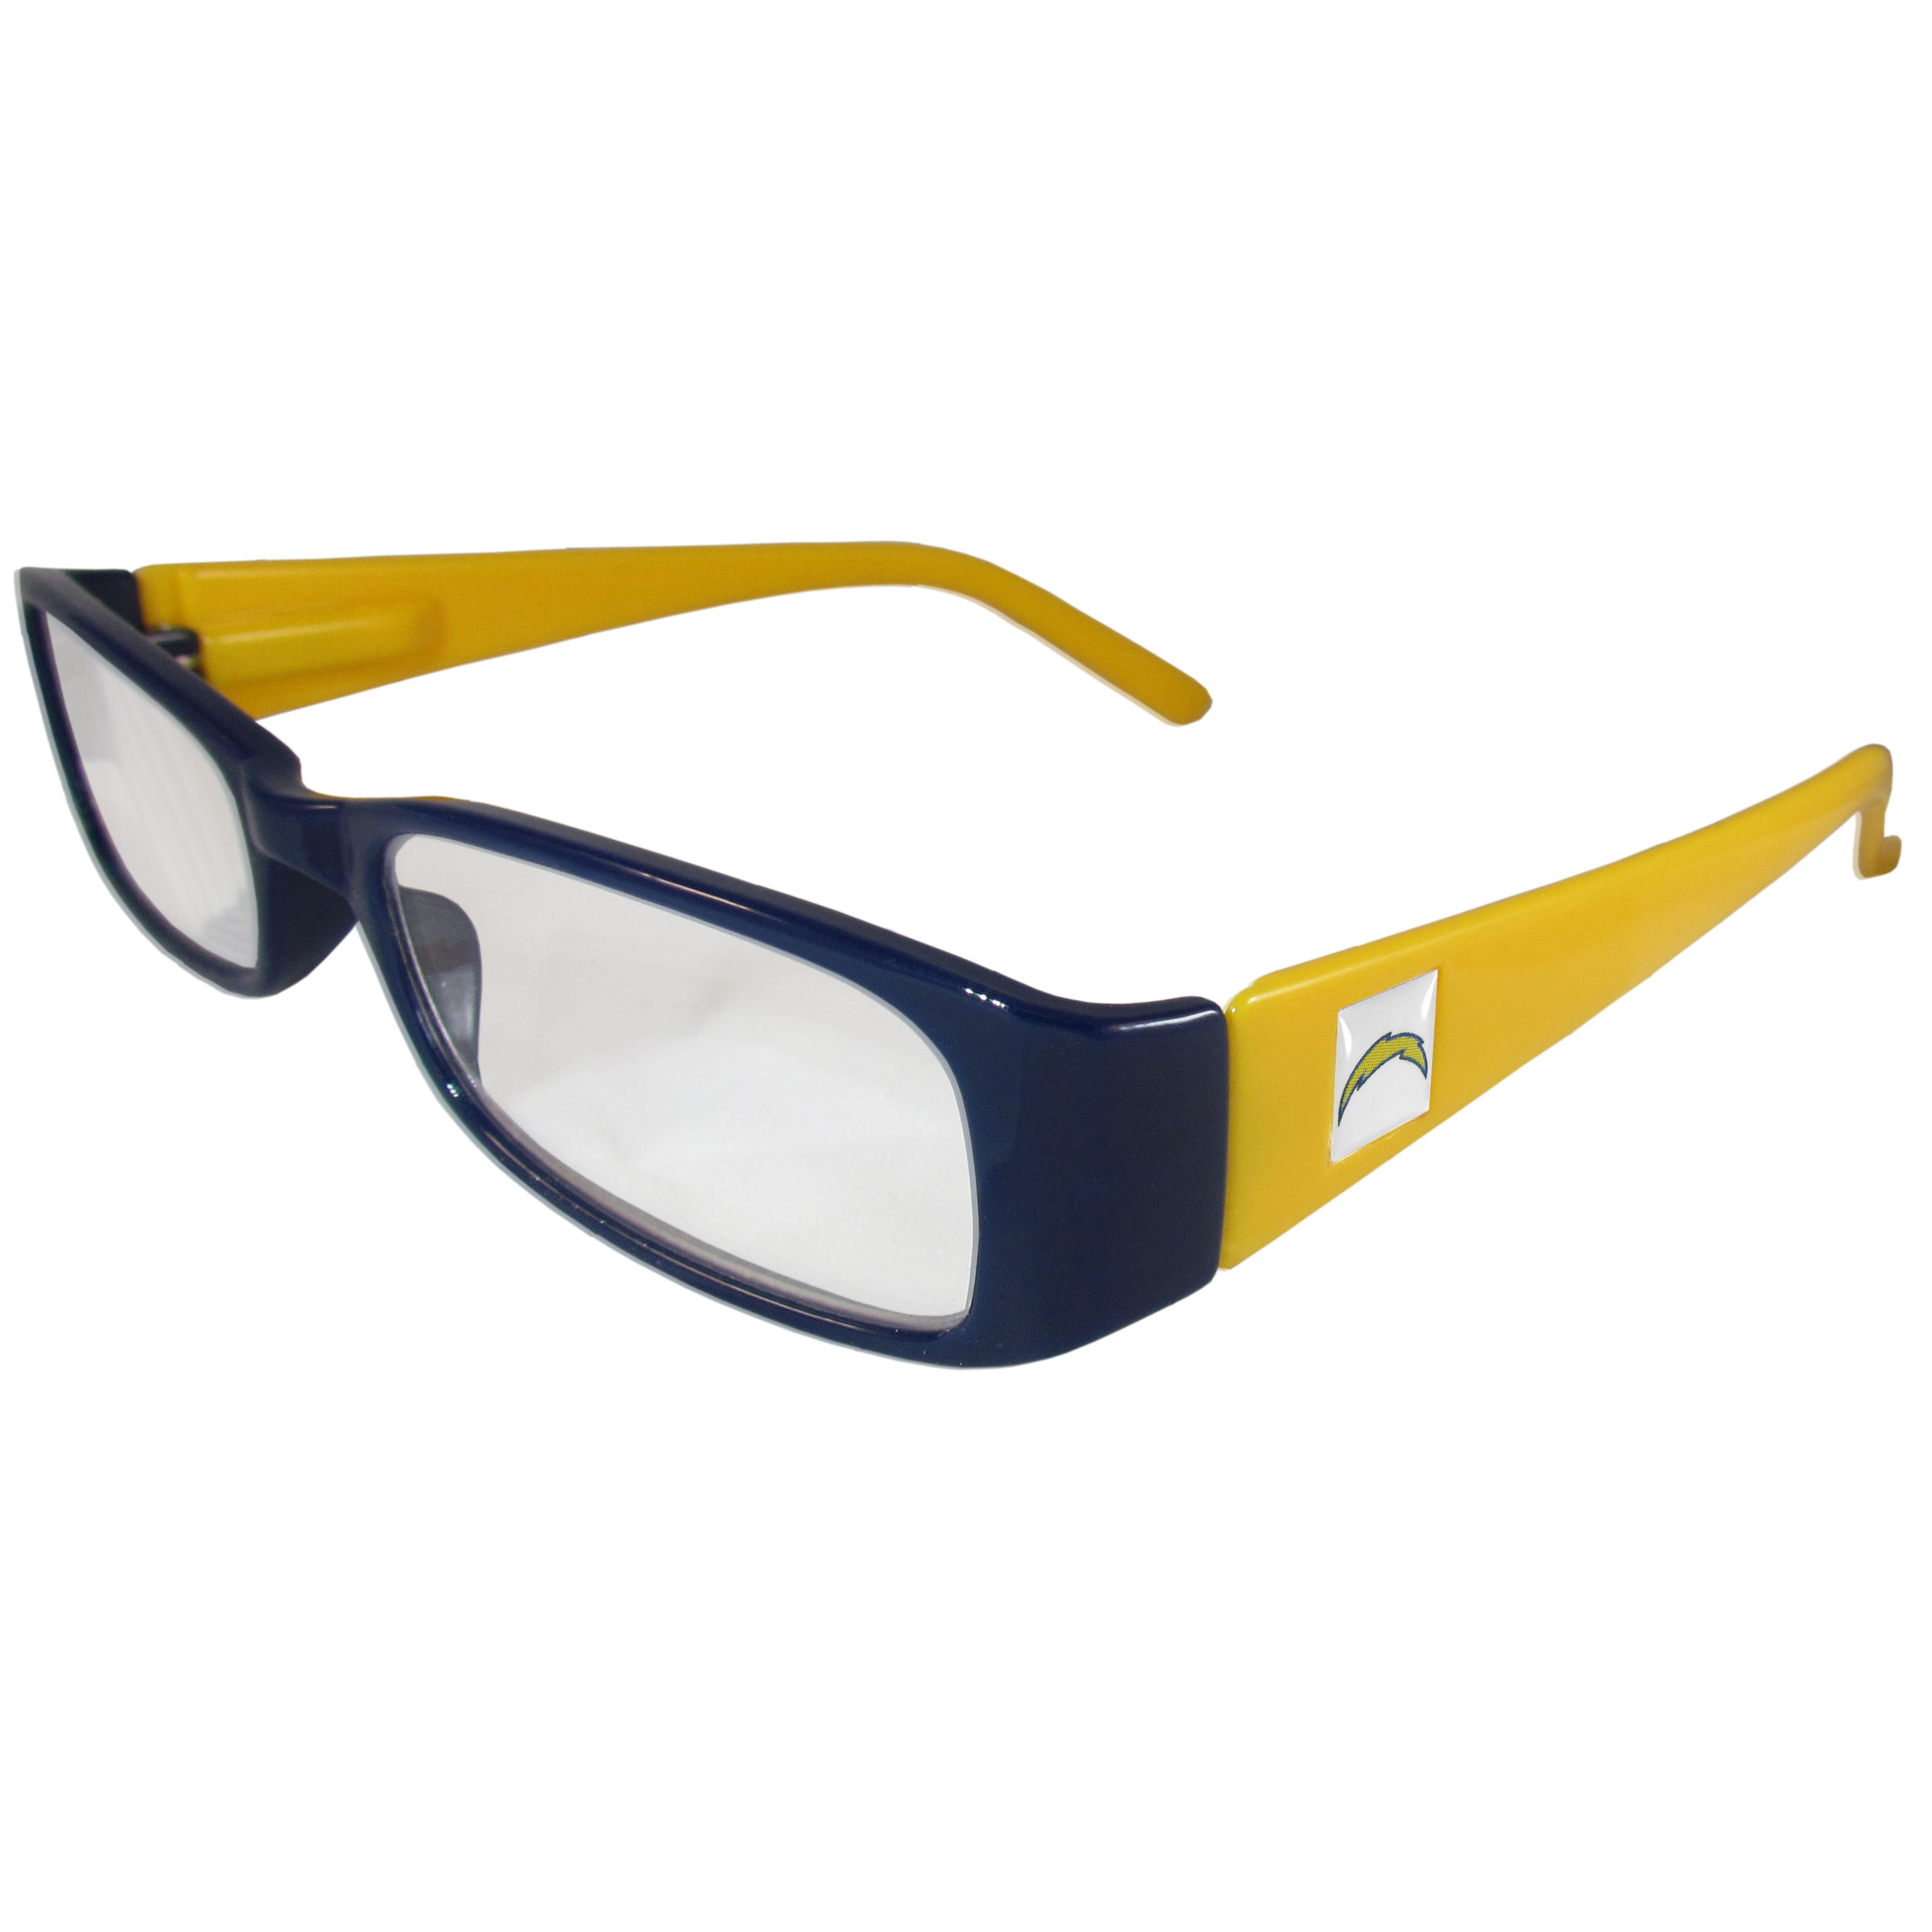 Los Angeles Chargers Reading Glasses +2.00 - Our Los Angeles Chargers reading glasses are 5.25 inches wide and feature the team logo on each arm. Magnification Power 2.00